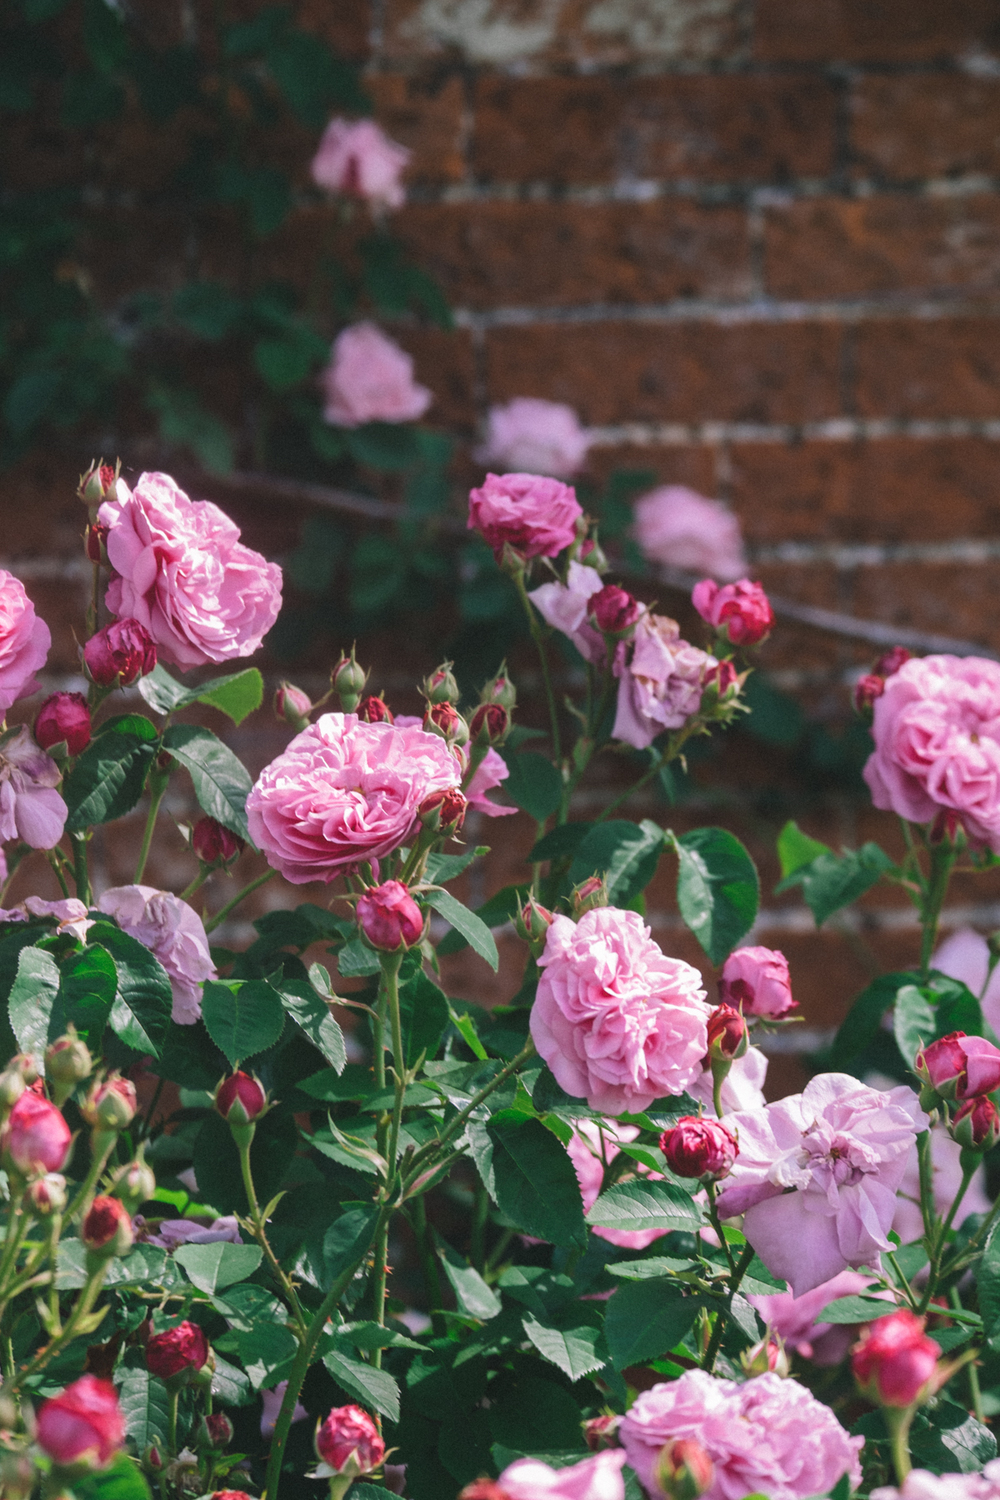 Roses at the Walled Garden, Mottisfont